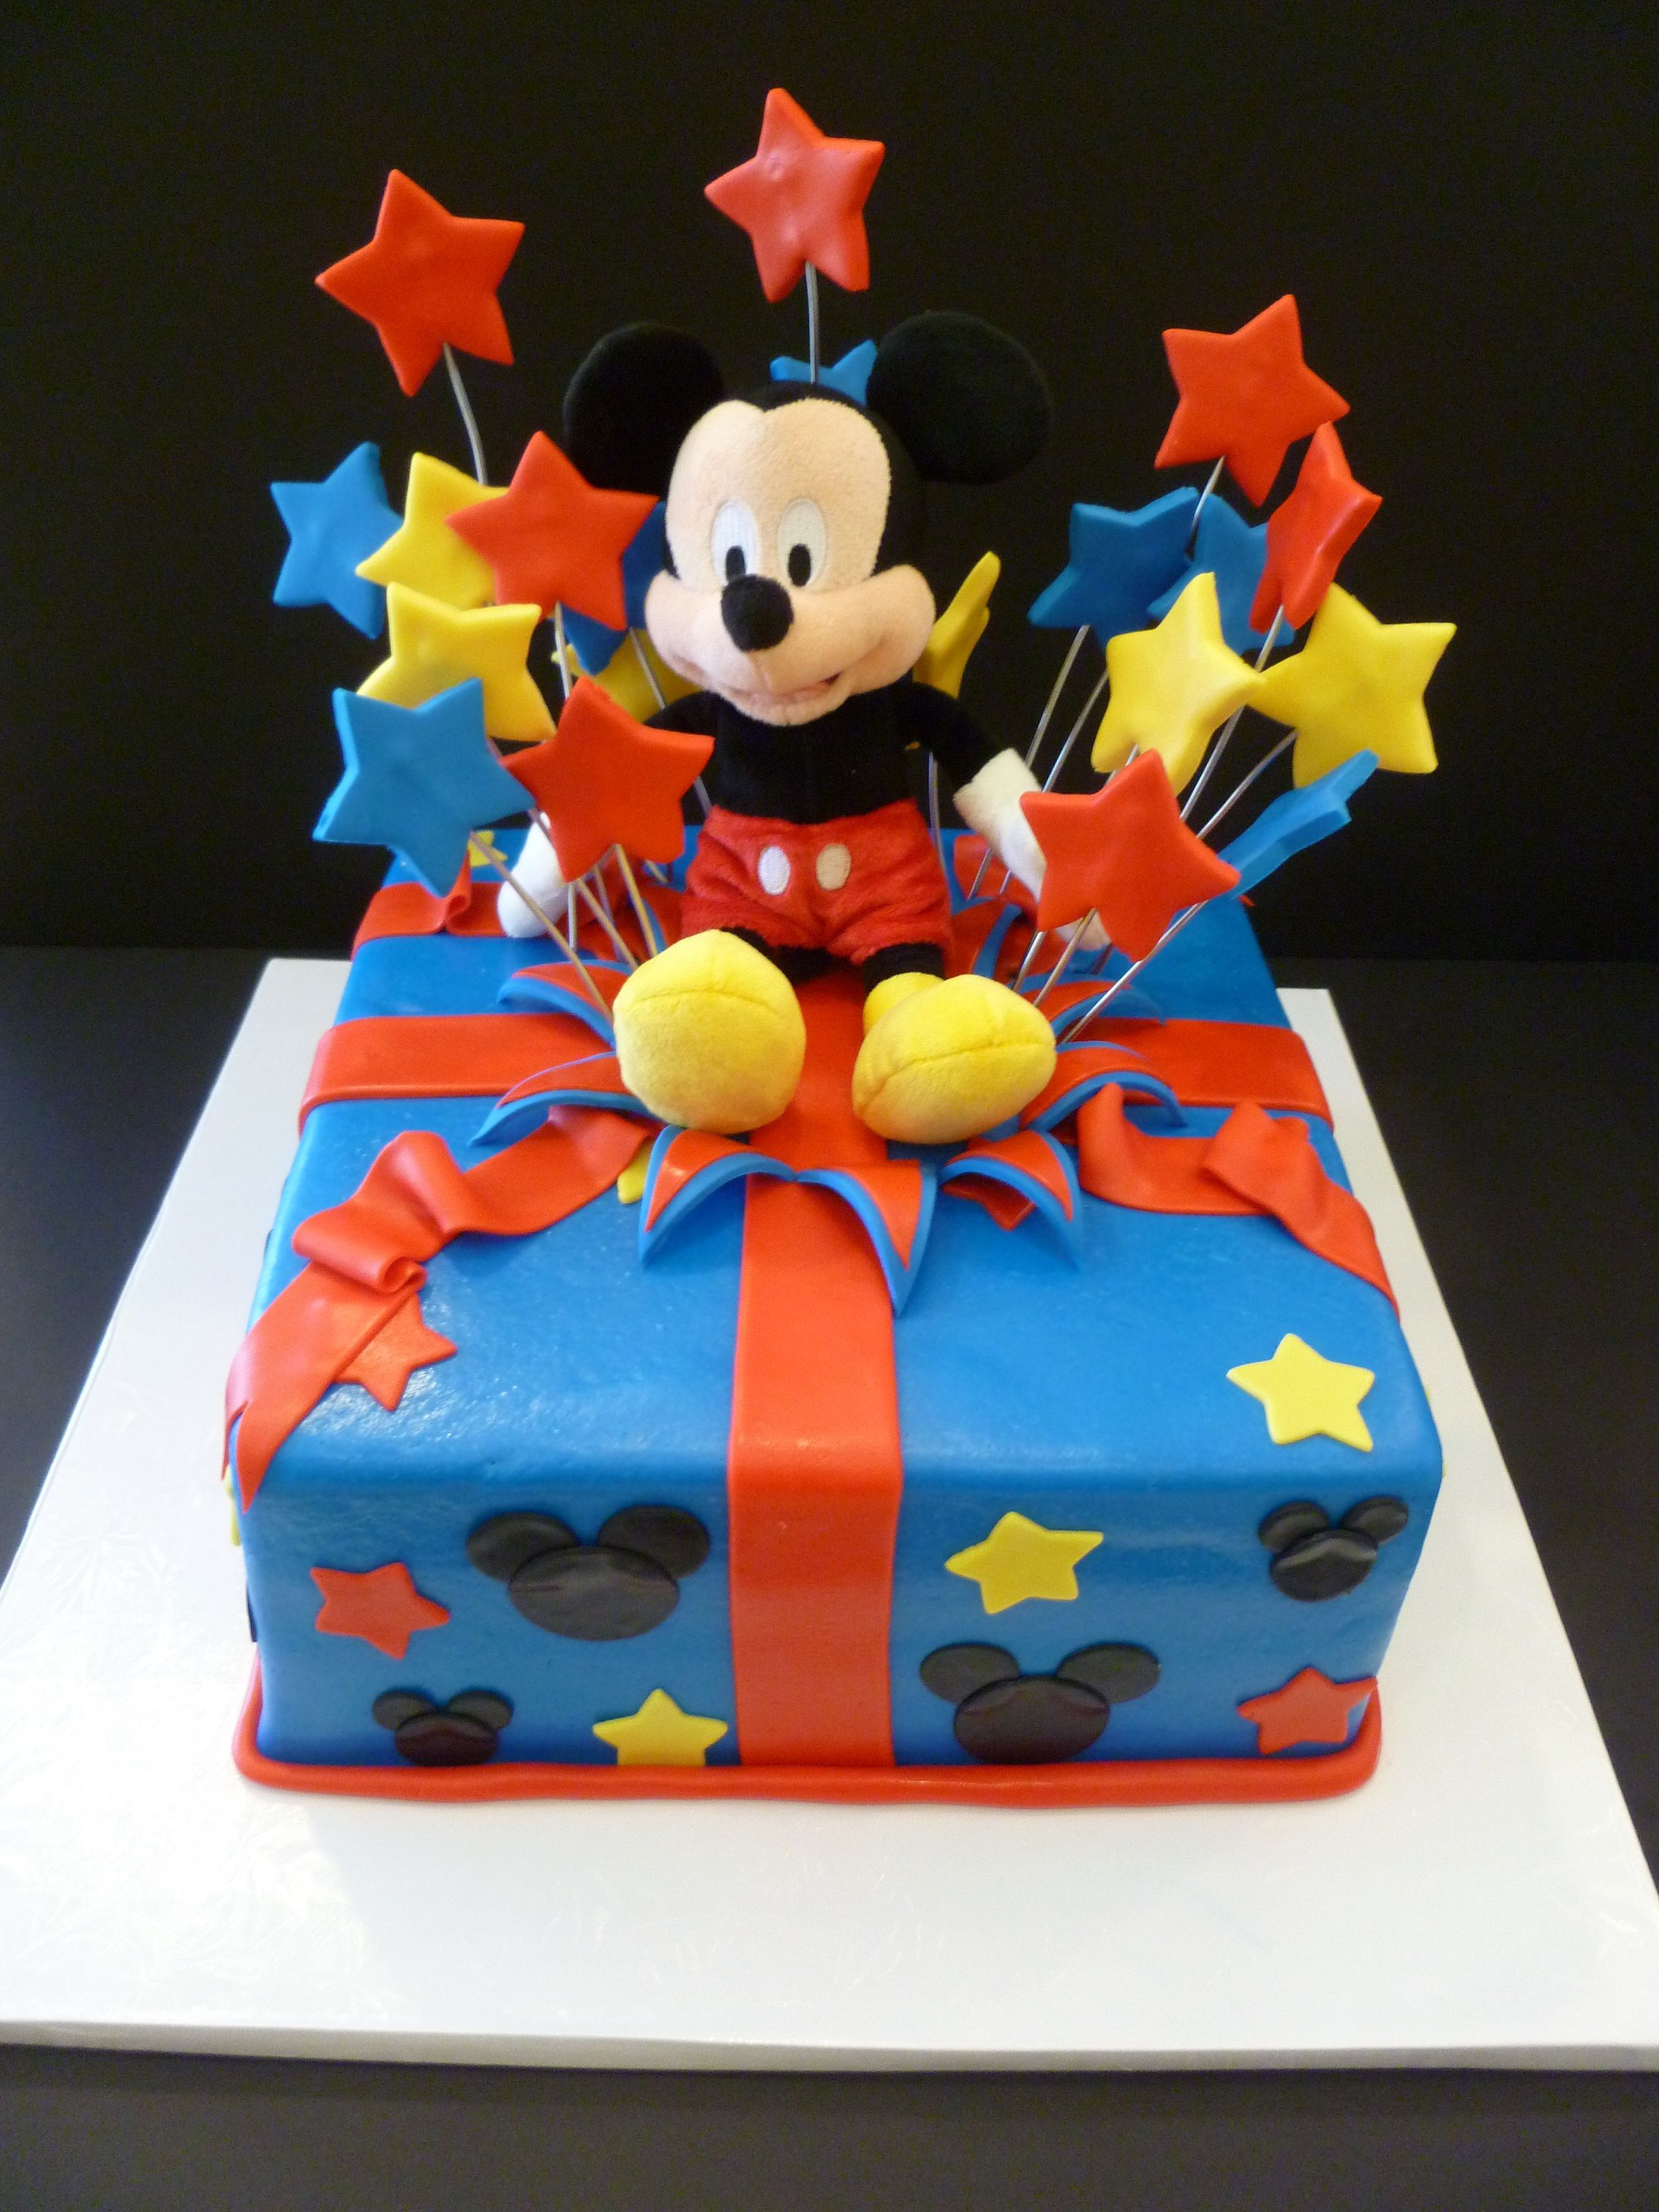 Baby Mickey Mouse Edible Cake Decorations Mickey Mouse Cake Ideas Inspirations Birthdays Cakes And